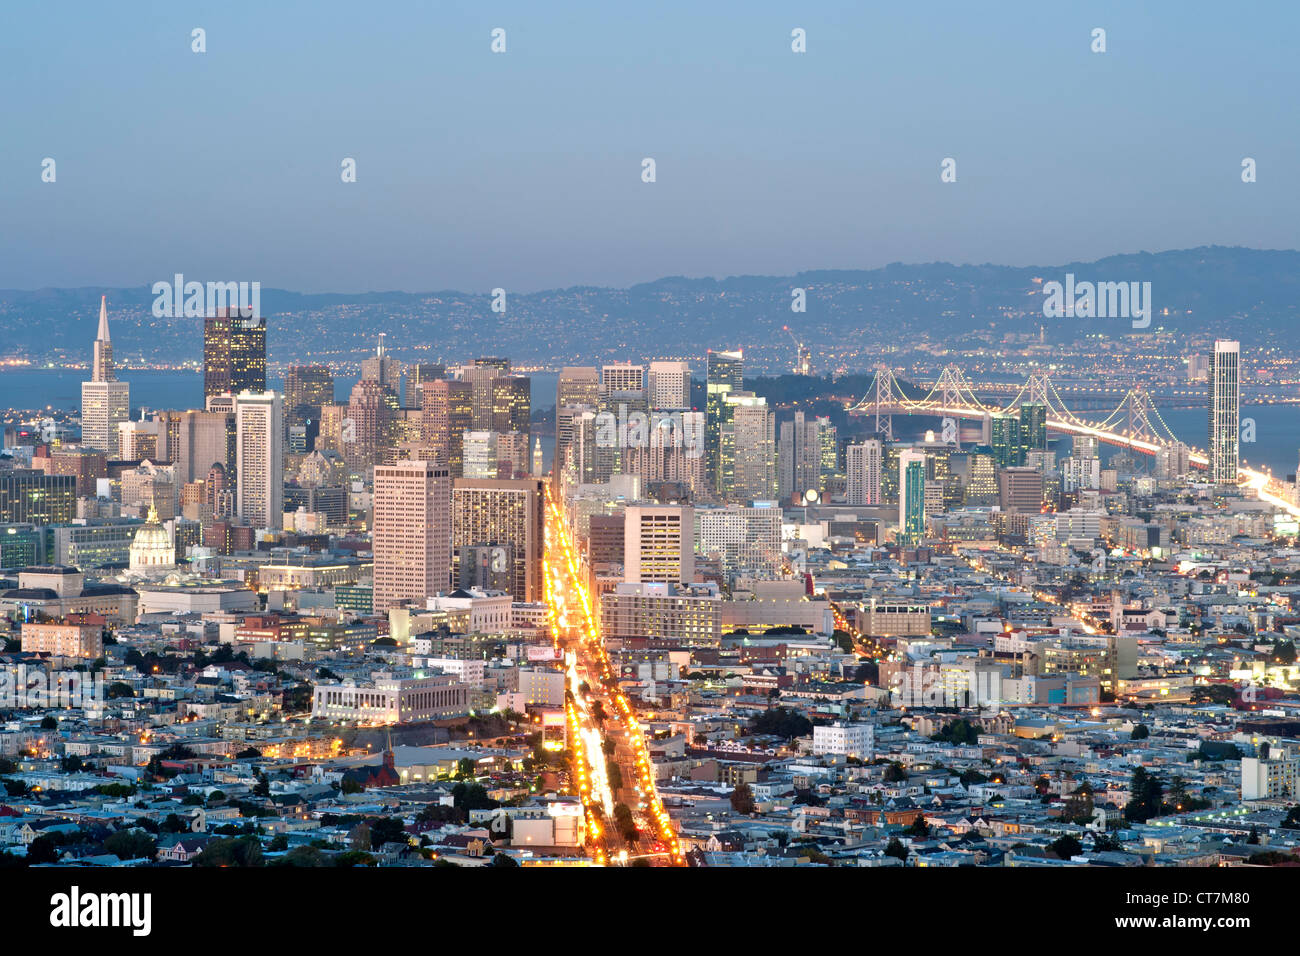 Dusk view across San Francisco from the summit of Twin Peaks in California, USA. - Stock Image